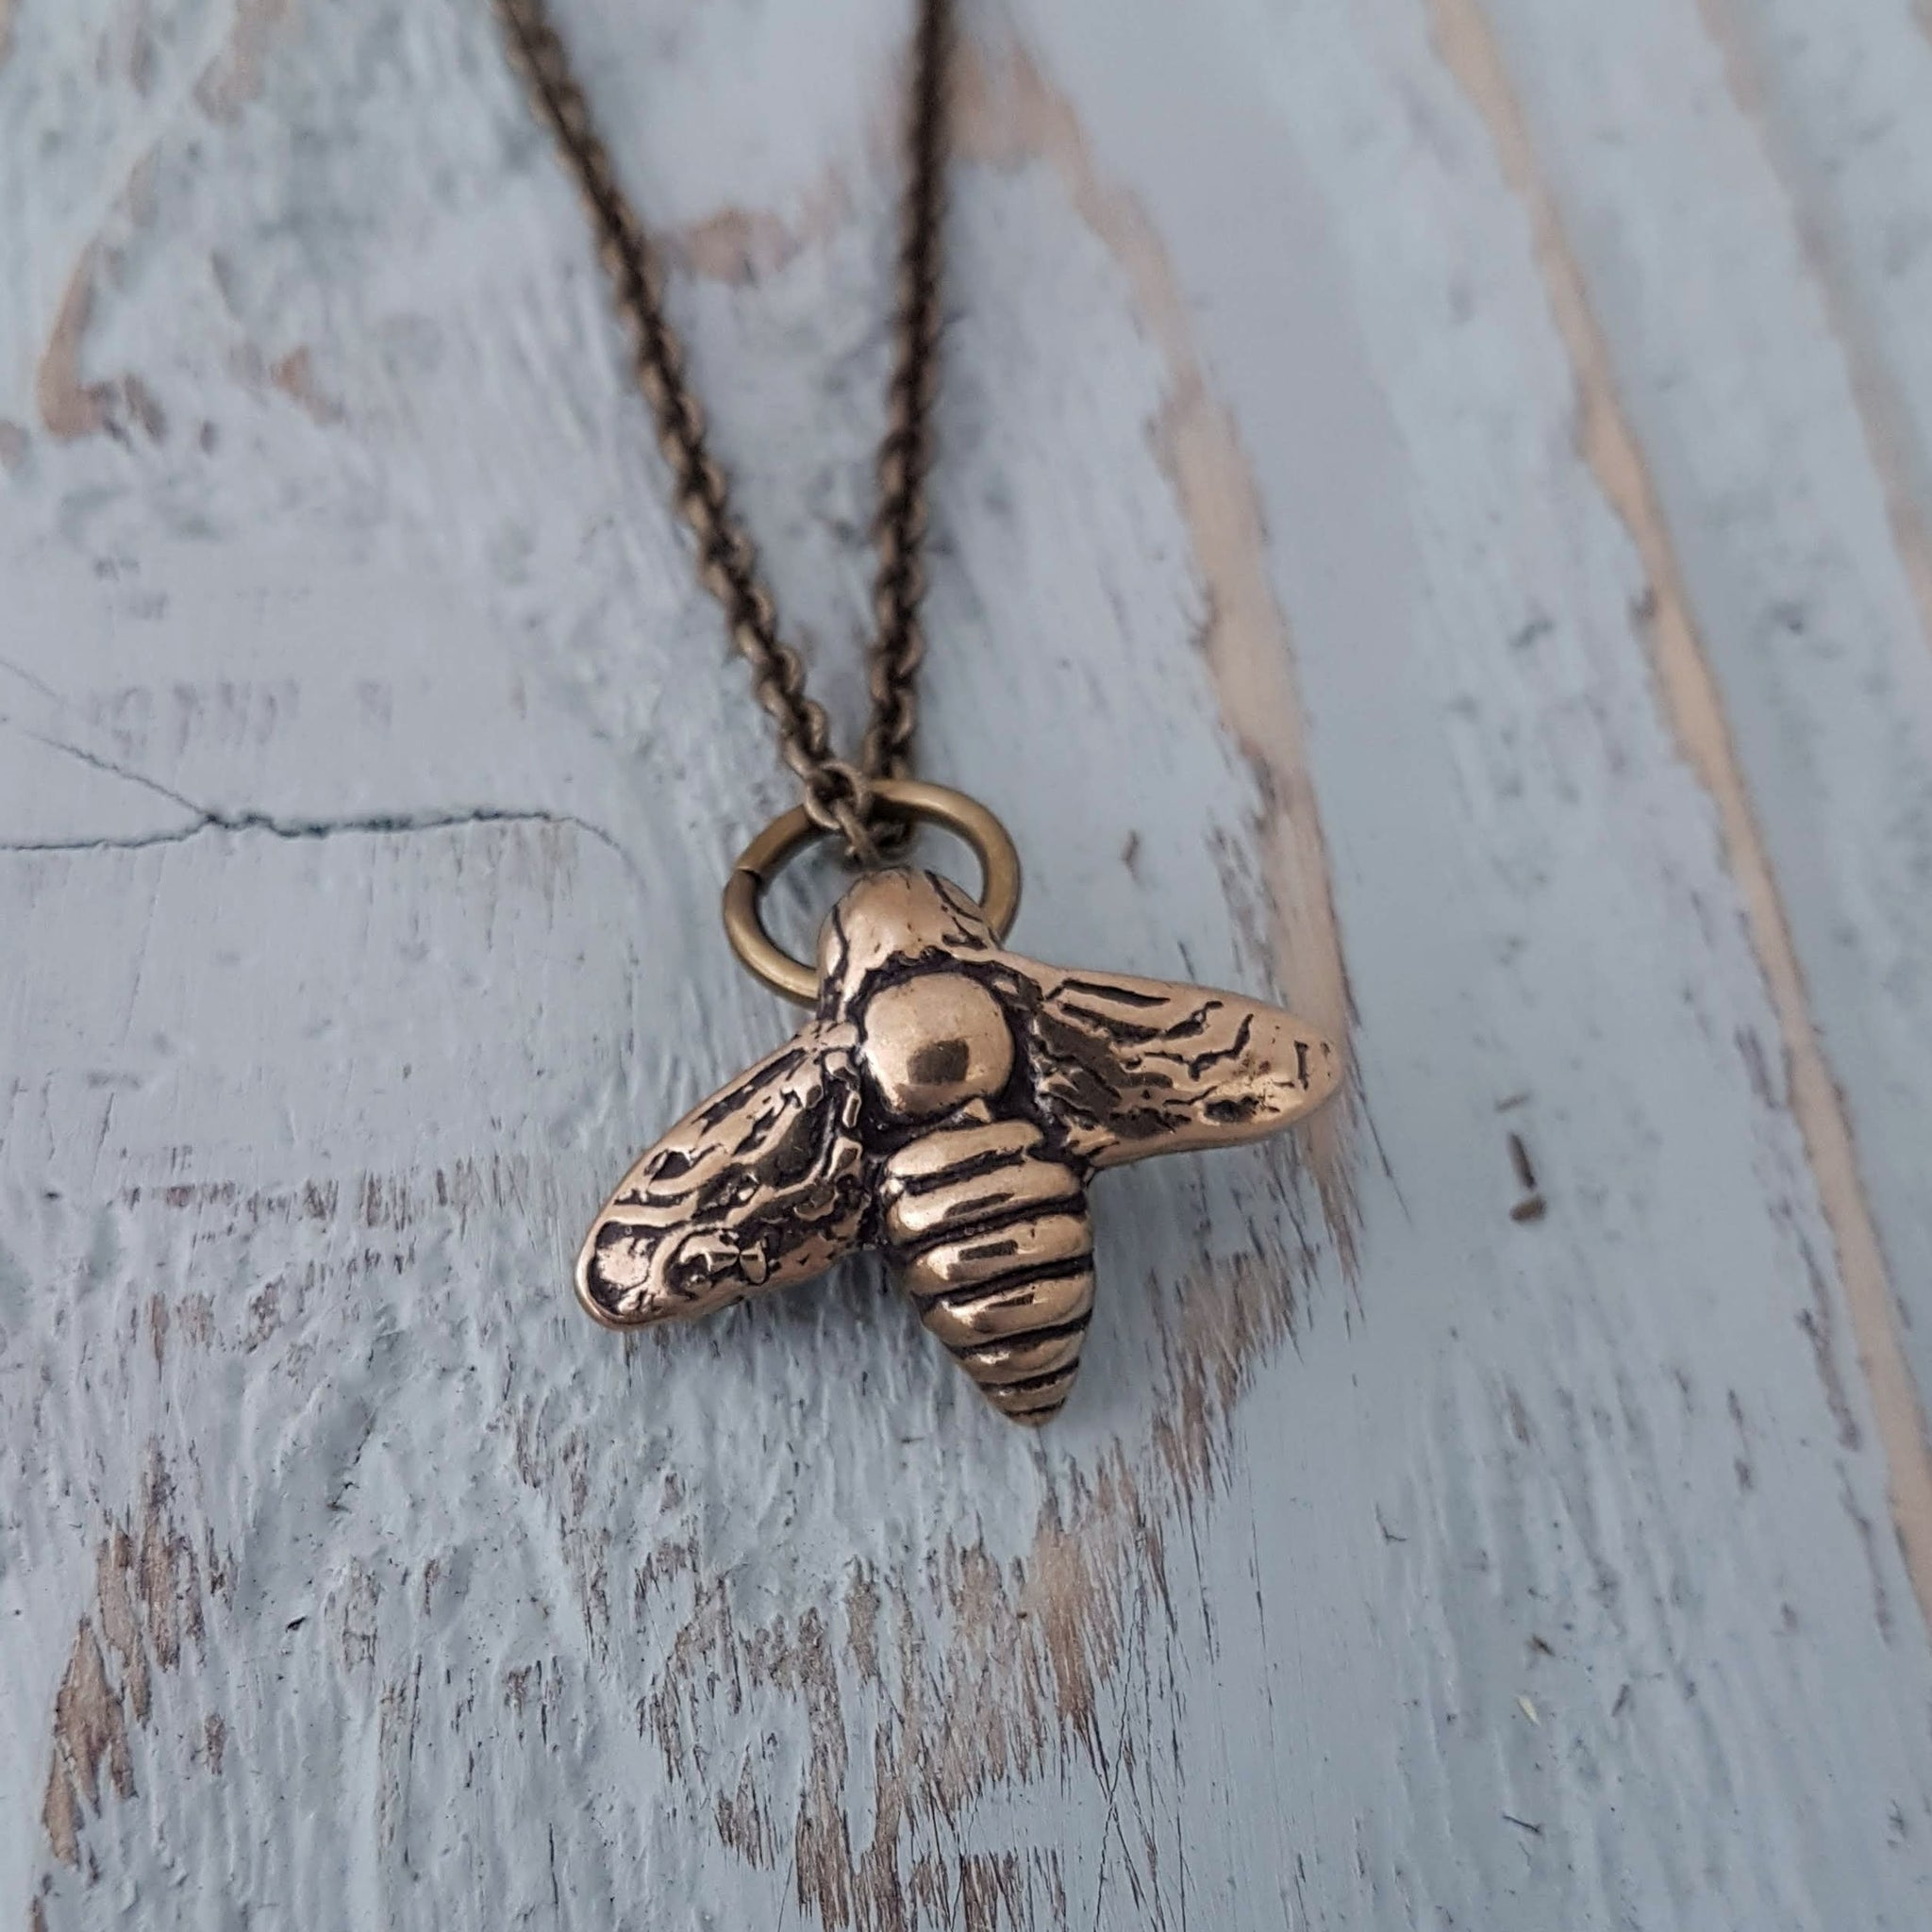 Flying Honey Bumble Bee Charm Necklace - Gwen Delicious Jewelry Designs